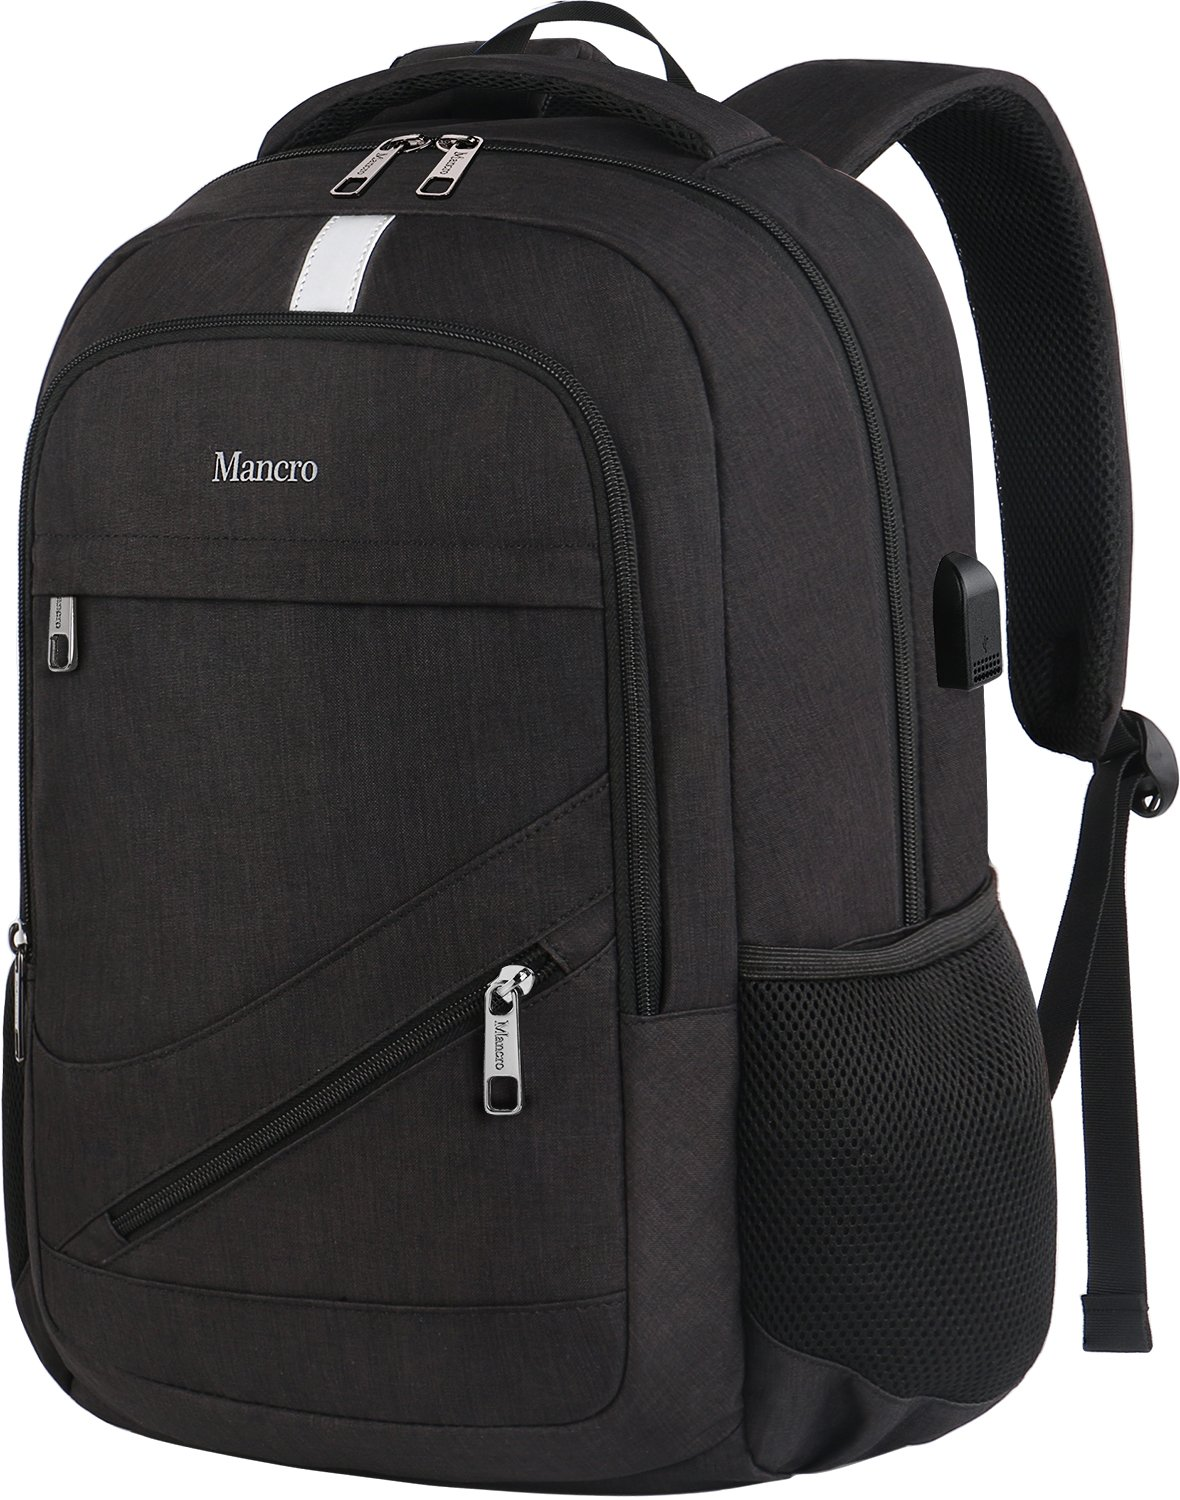 "Laptop Backpack 15.6, Mancro Anti Theft Travel Business Computer Bag For Women Men, Water Resistant Polyester College School Bookbag, Slim Backpack With Usb Charging Port Fit 15.6"" Notebook (Black) by Mancro"